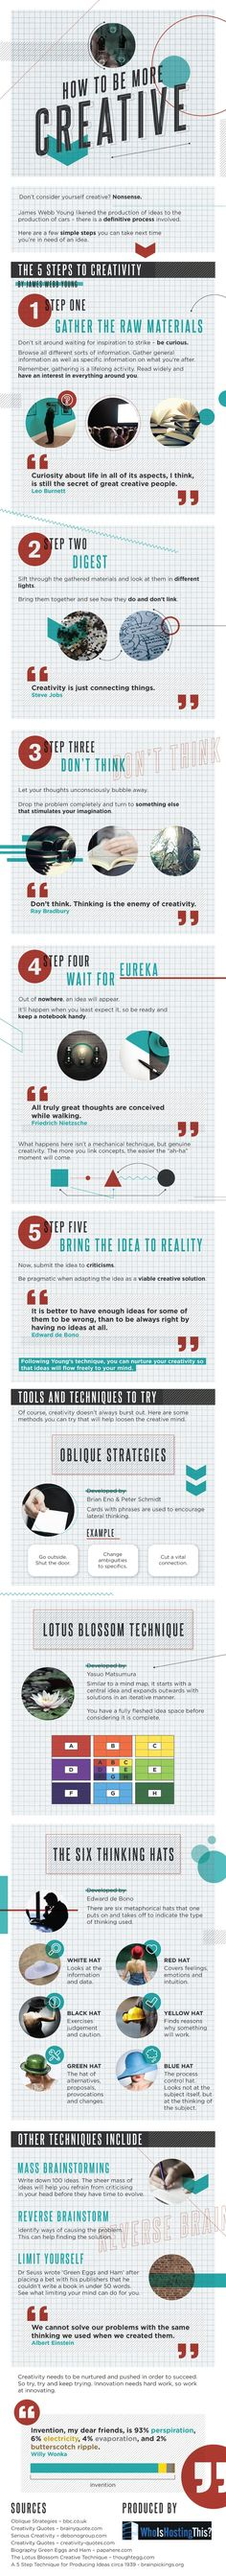 Boost Creativity: You don& have to be an artist to be creative. We were all born to be creative. This infographic tells us more. Design Thinking, Creative Thinking, Cv Inspiration, Graphic Design Inspiration, Creative Inspiration, Boost Creativity, Creativity And Innovation, Graphisches Design, Social Media